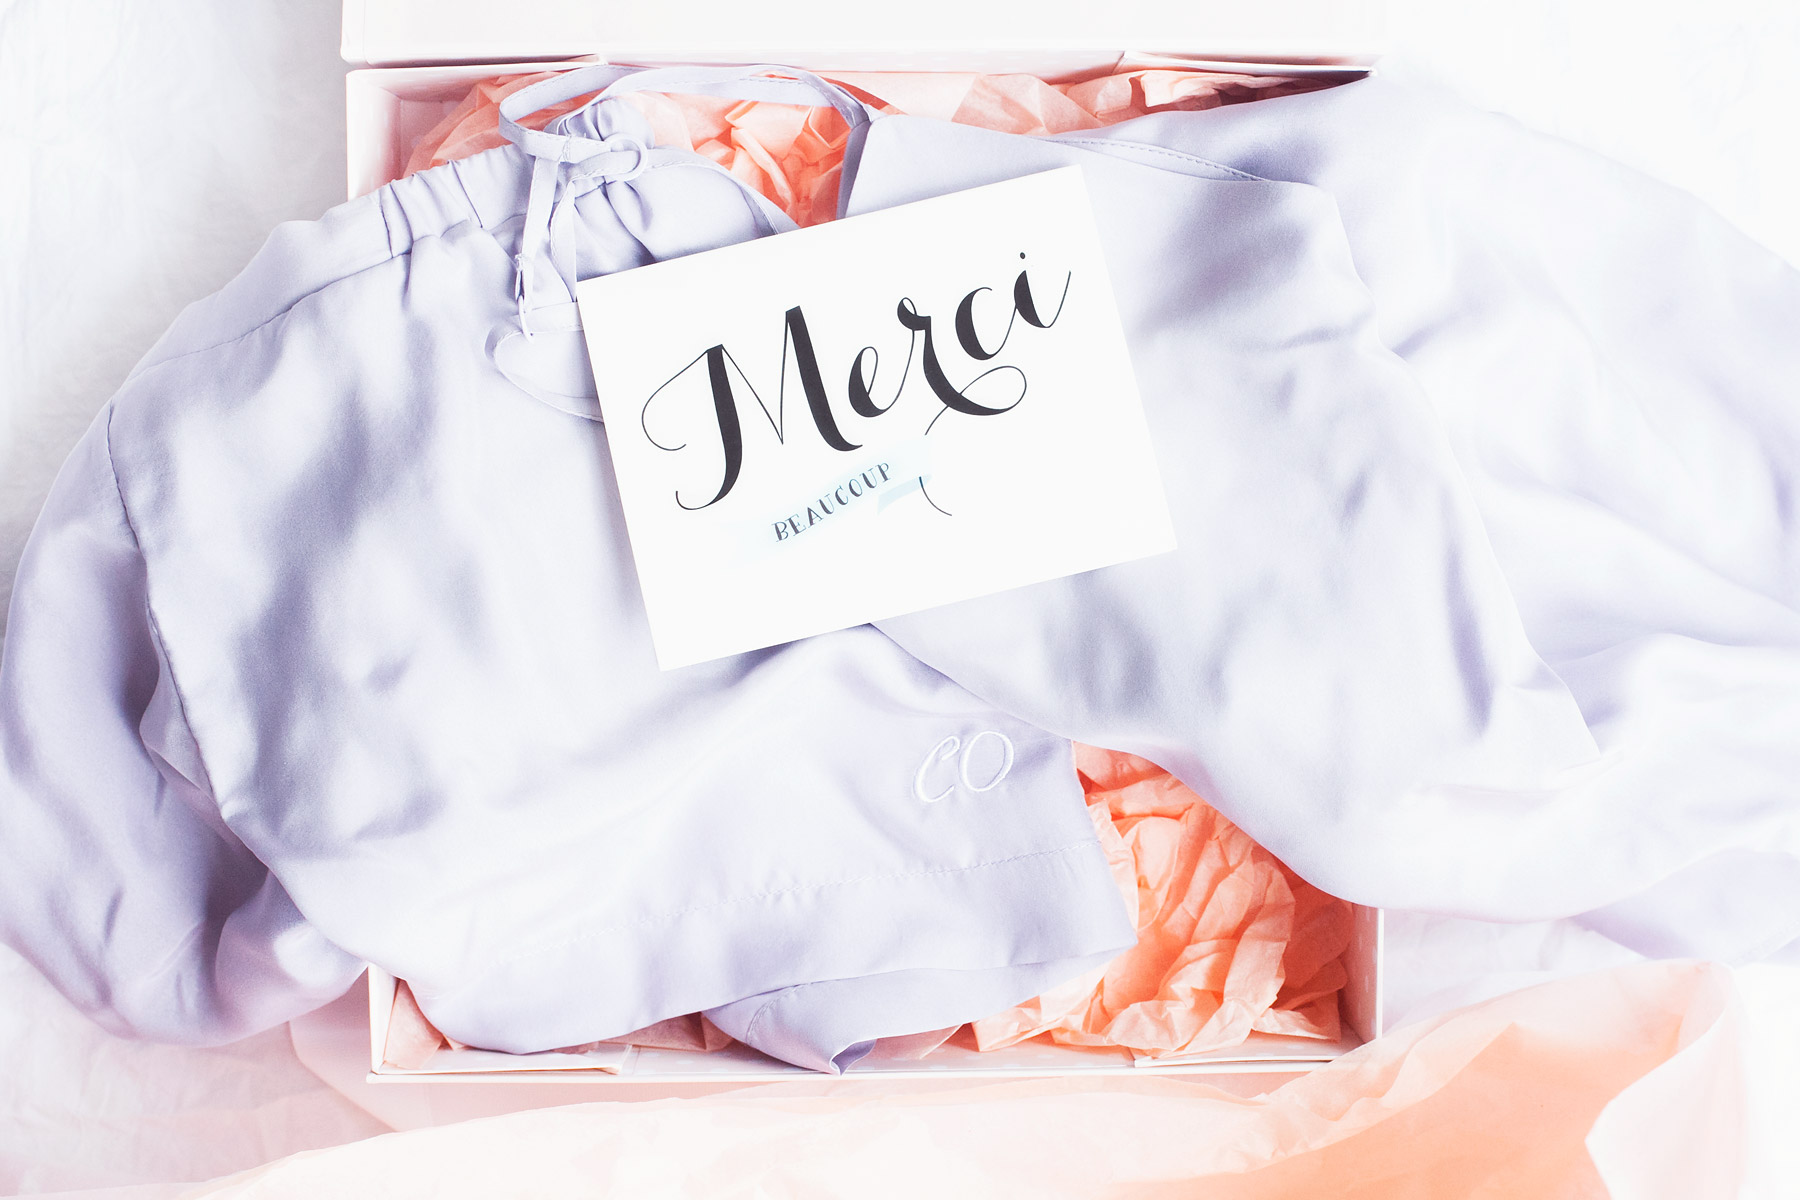 Rebecca Peace sleepwear by Carin Olsson (Paris in Four Months)